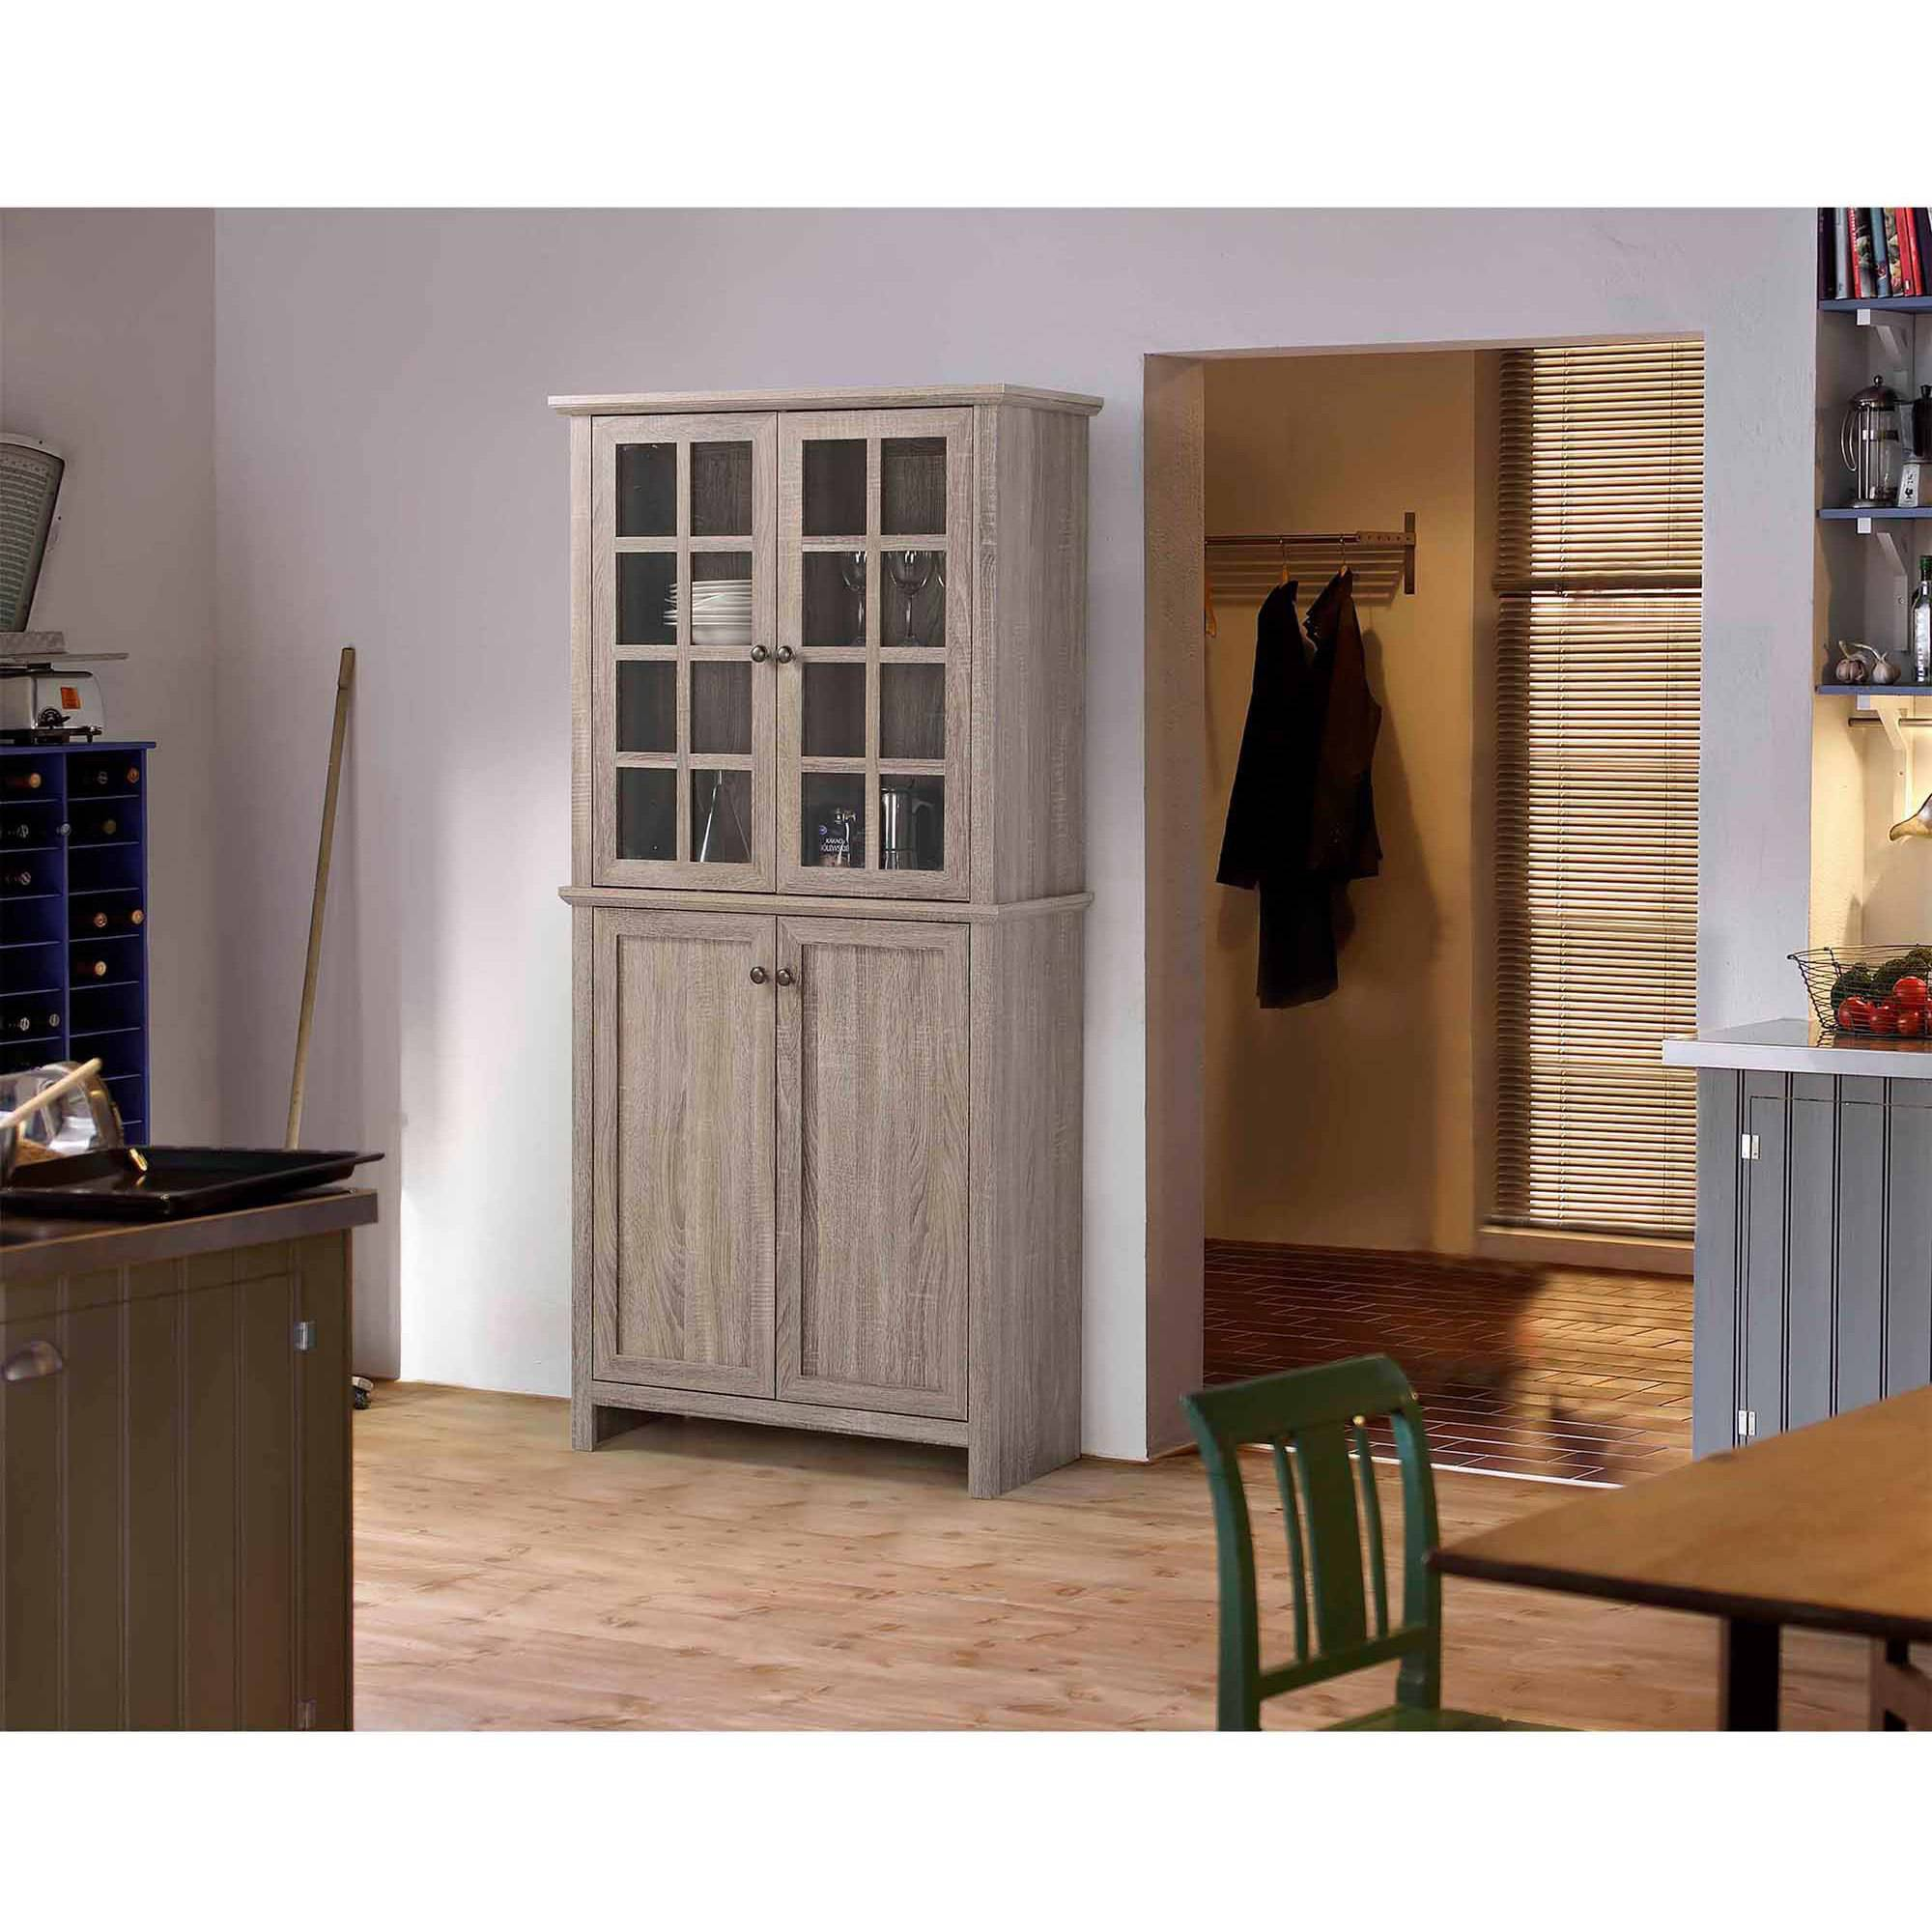 Homestar 2-Door Glass Storage Cabinet, Reclaimed Wood